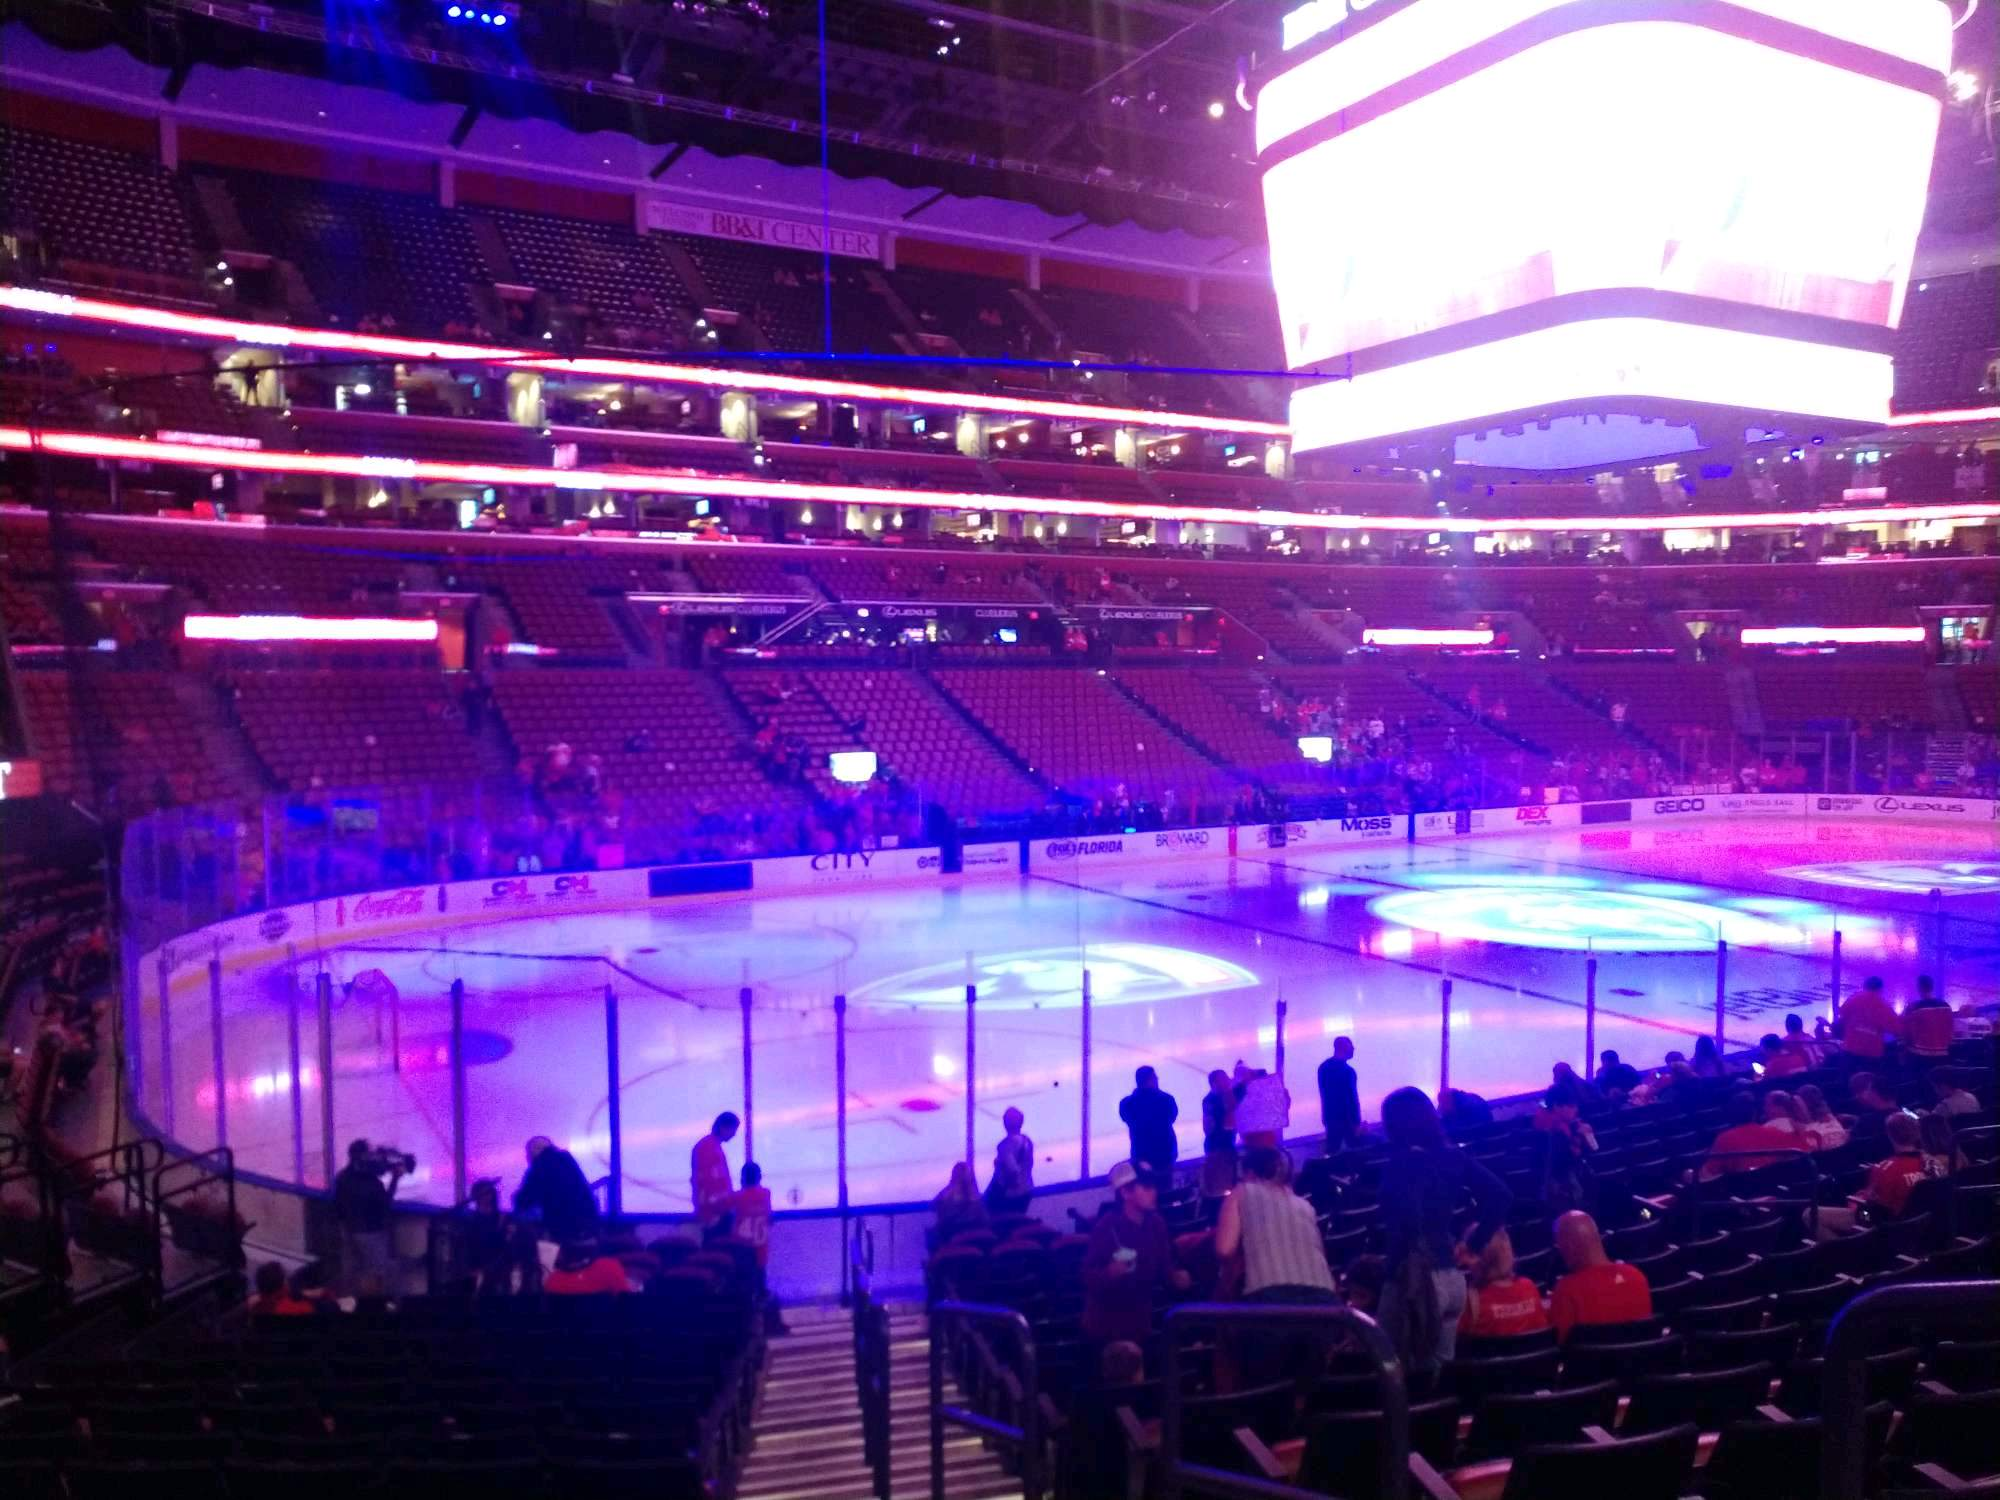 BB&T Center Section 122 Row 17 Seat 2